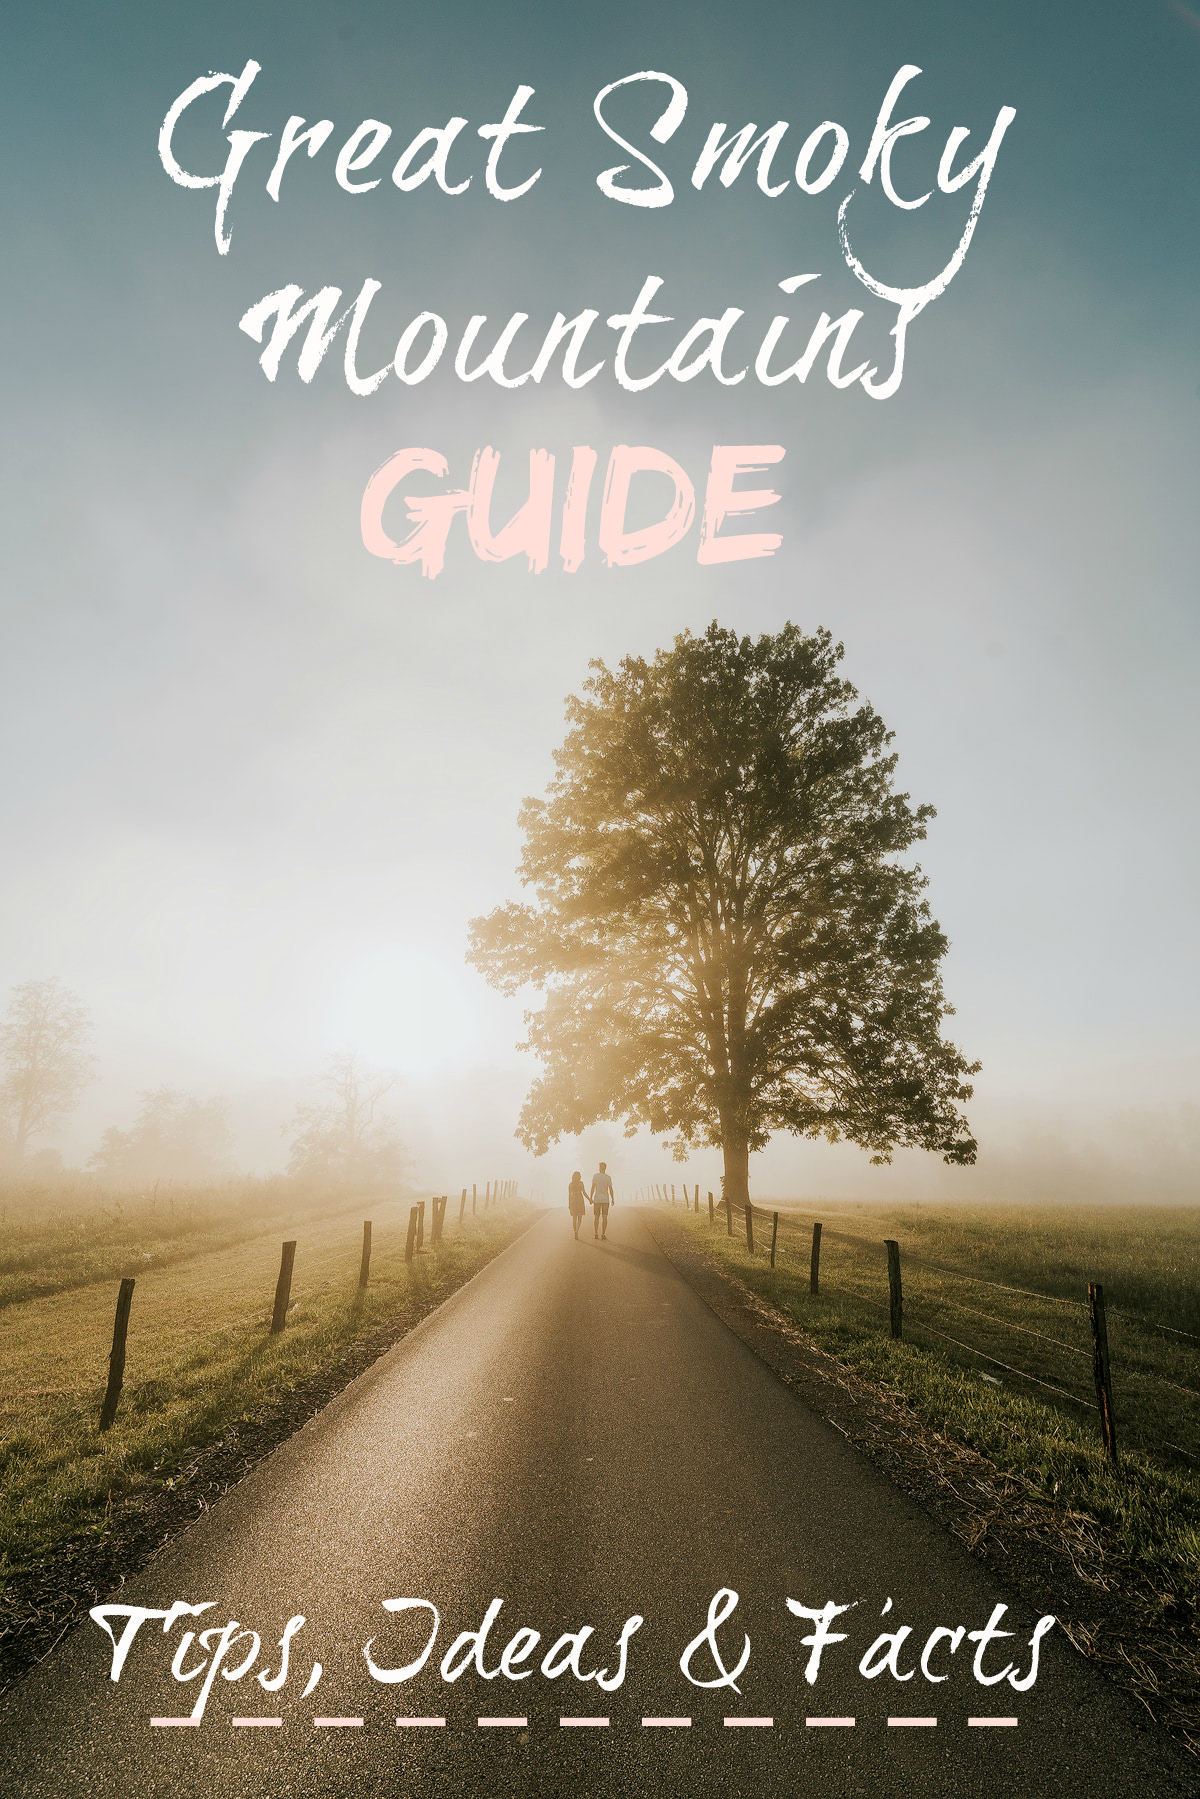 Great Smoky Mountains Guide Renee Roaming